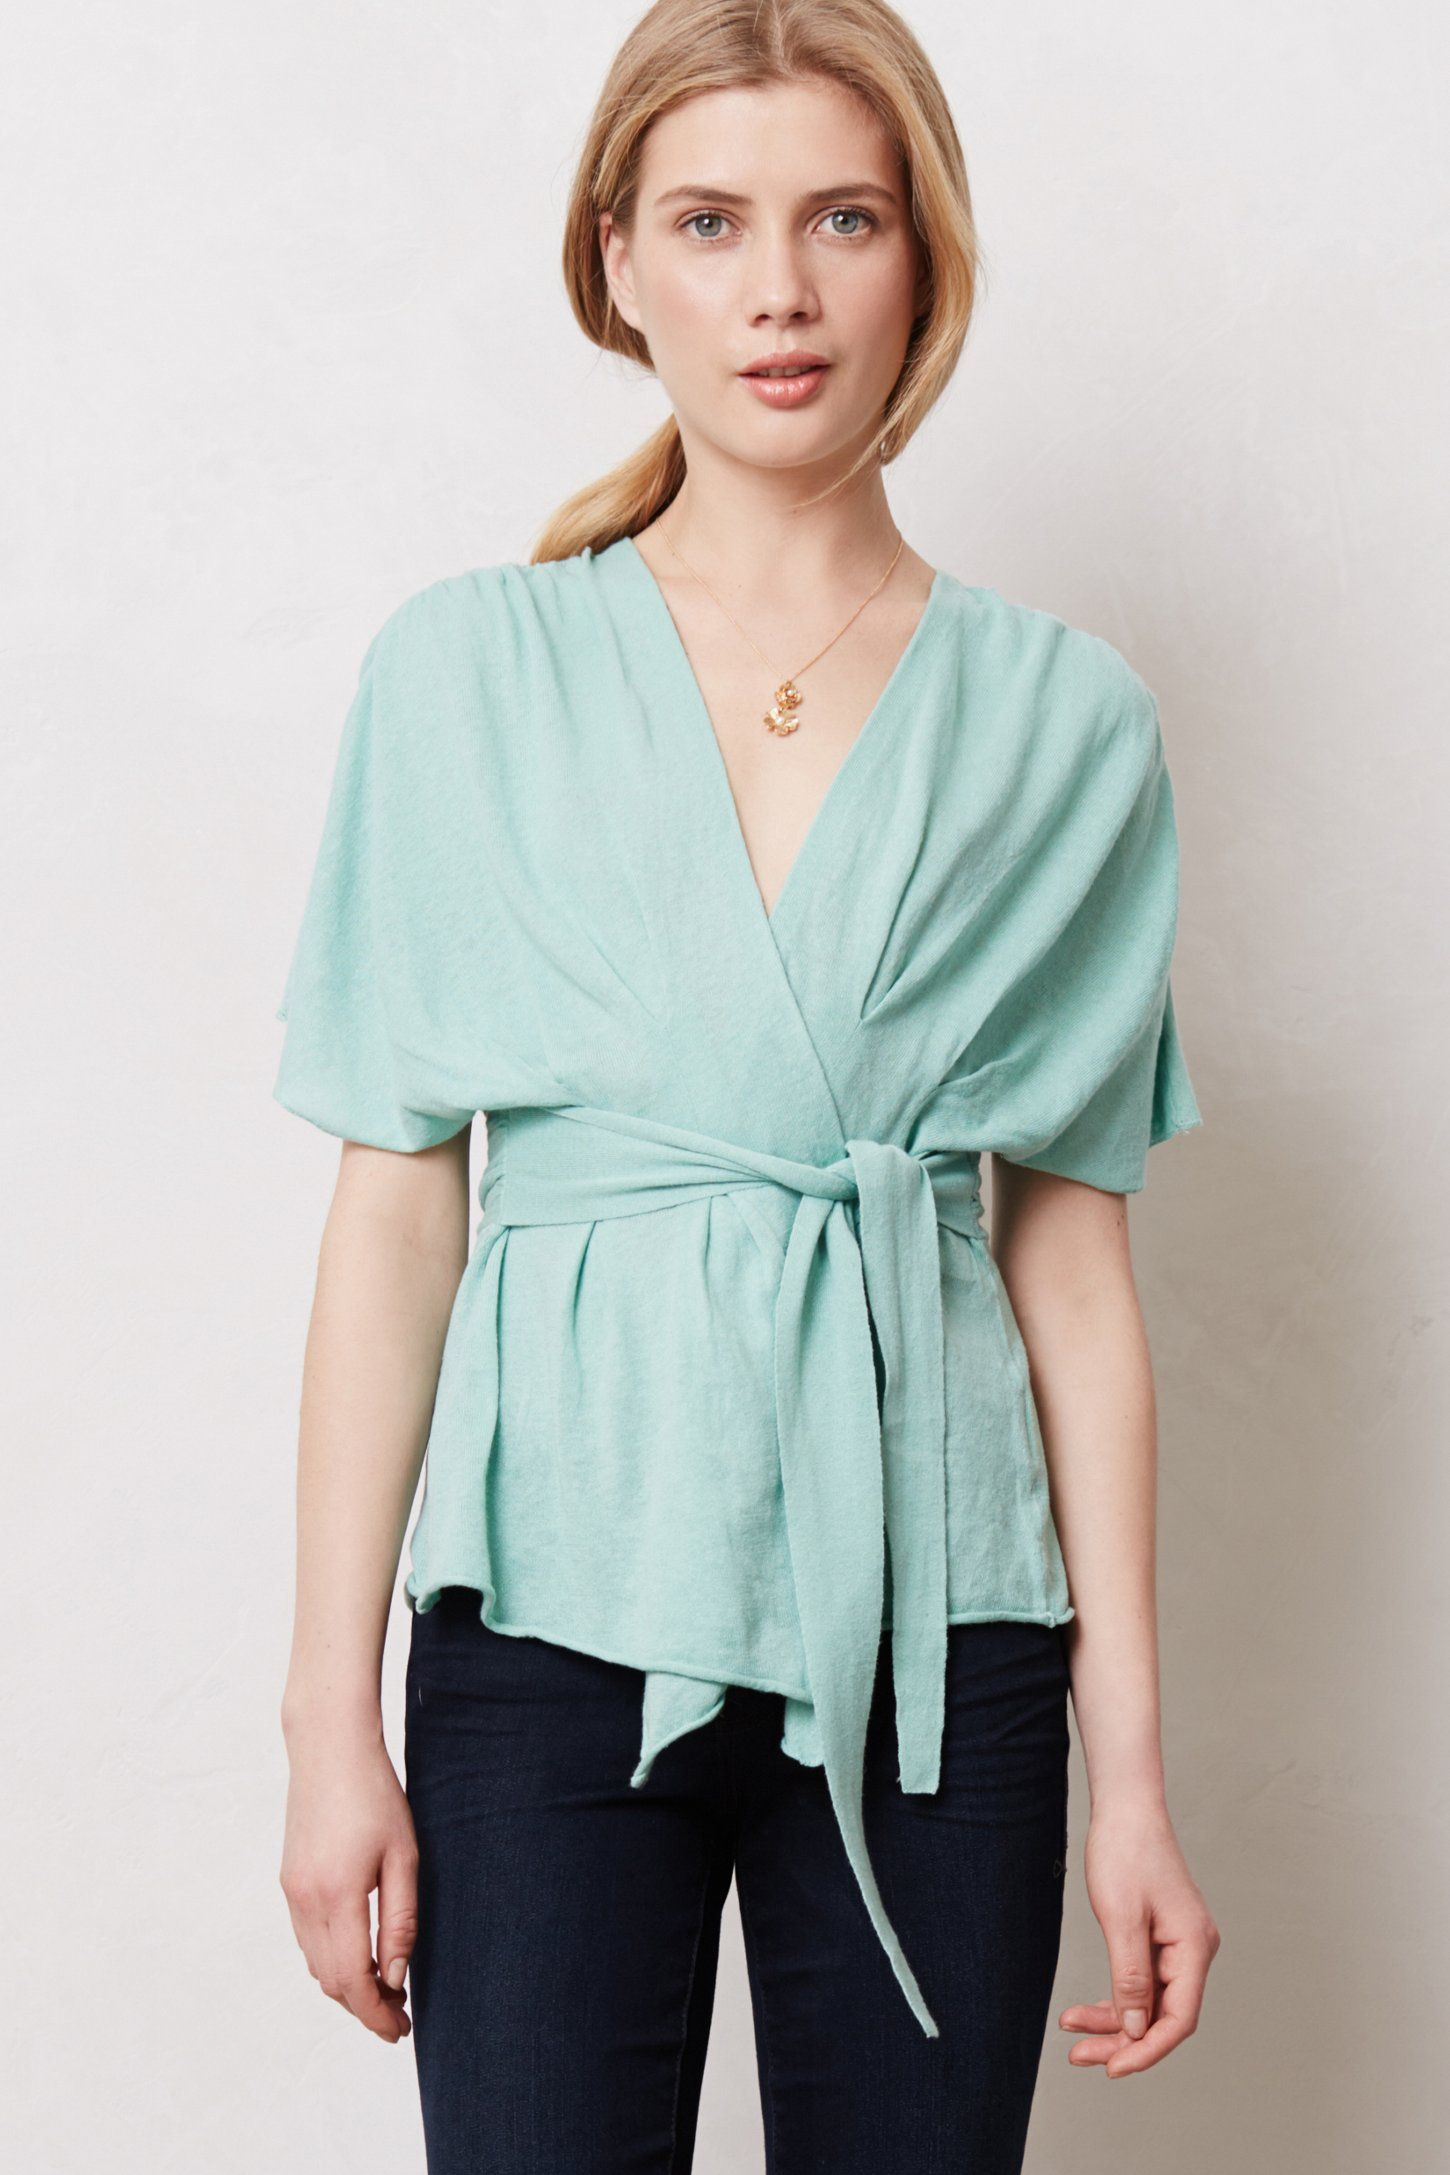 Draped Wrap Sweater in pretty turquoise | Pretty Products - To ...